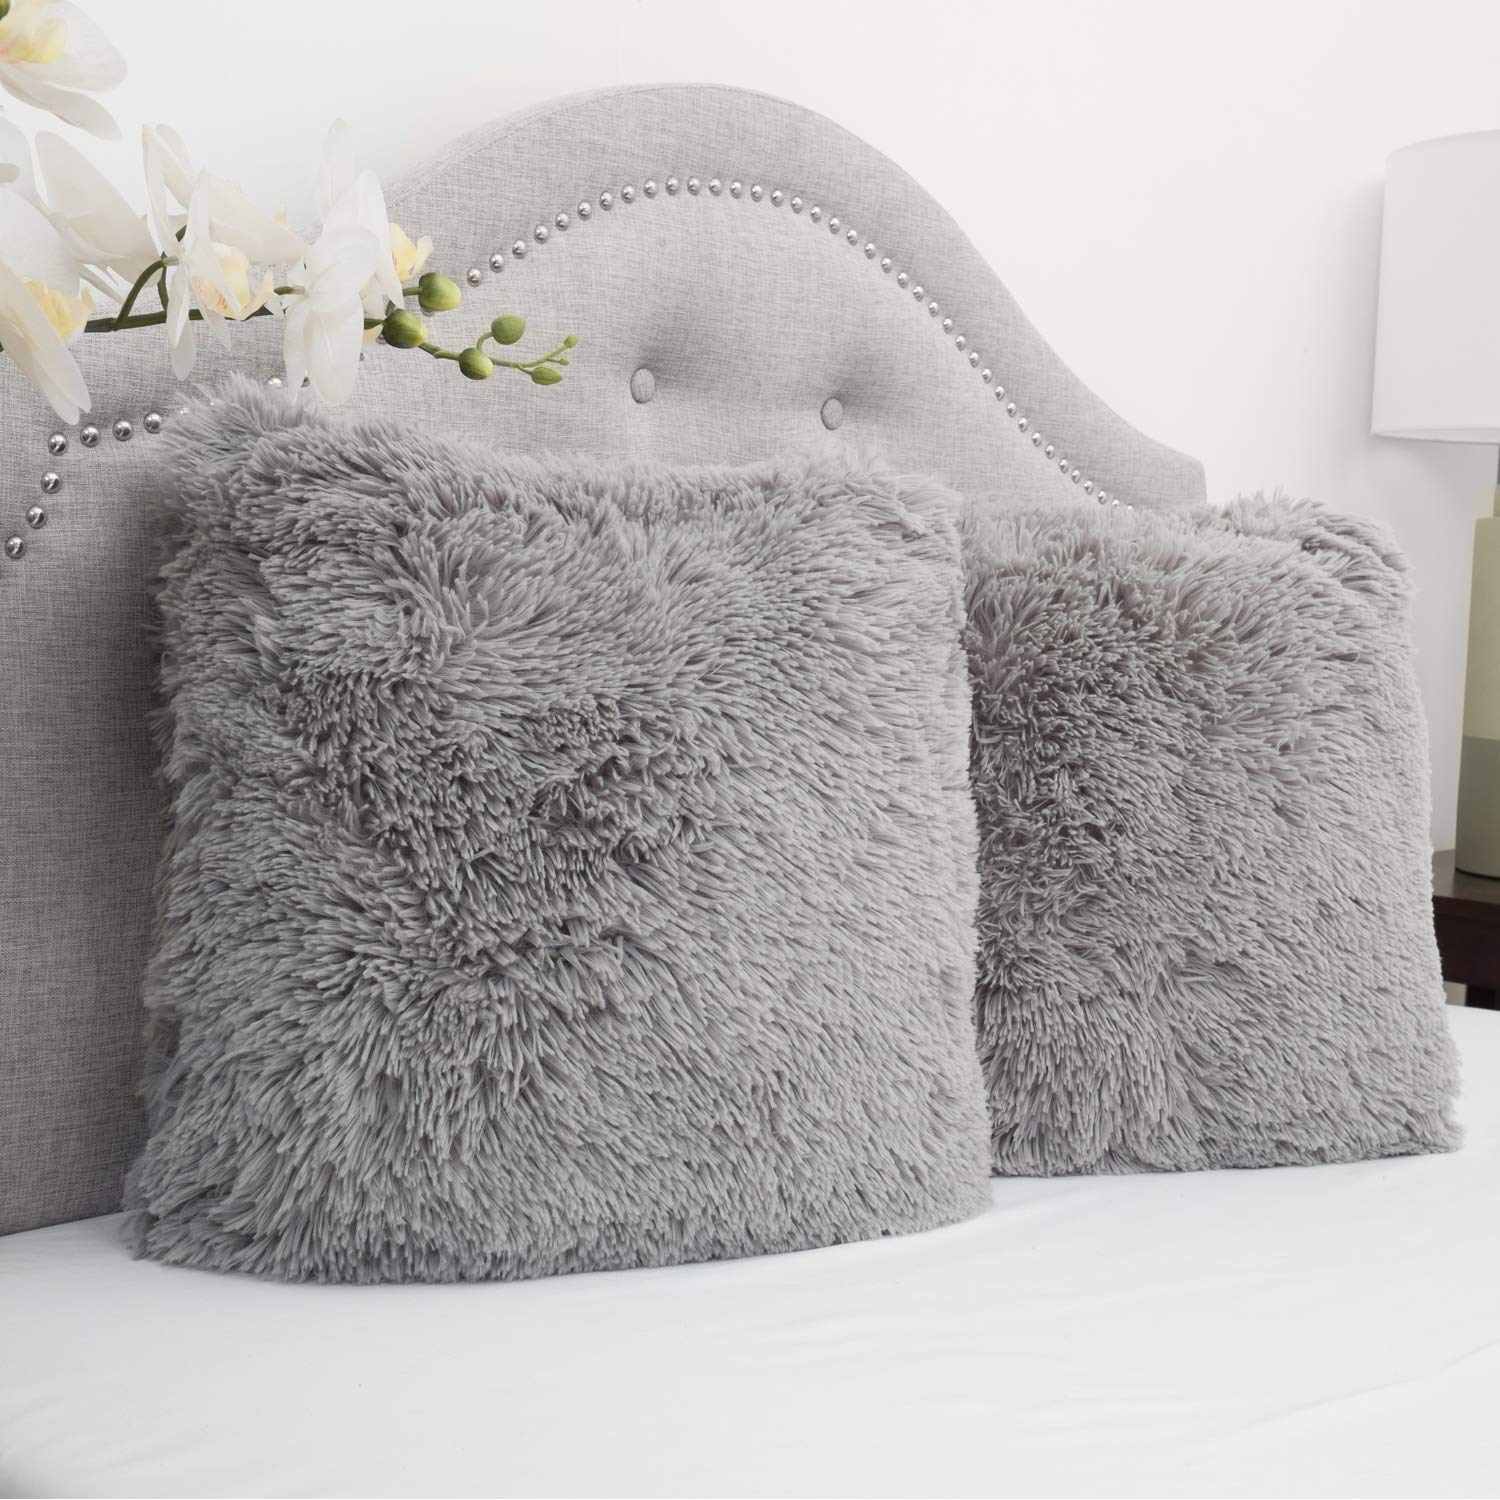 Chocolate 2-Pack Sweet Home Collection Plush Faux Fur Soft and Comfy Throw Pillow